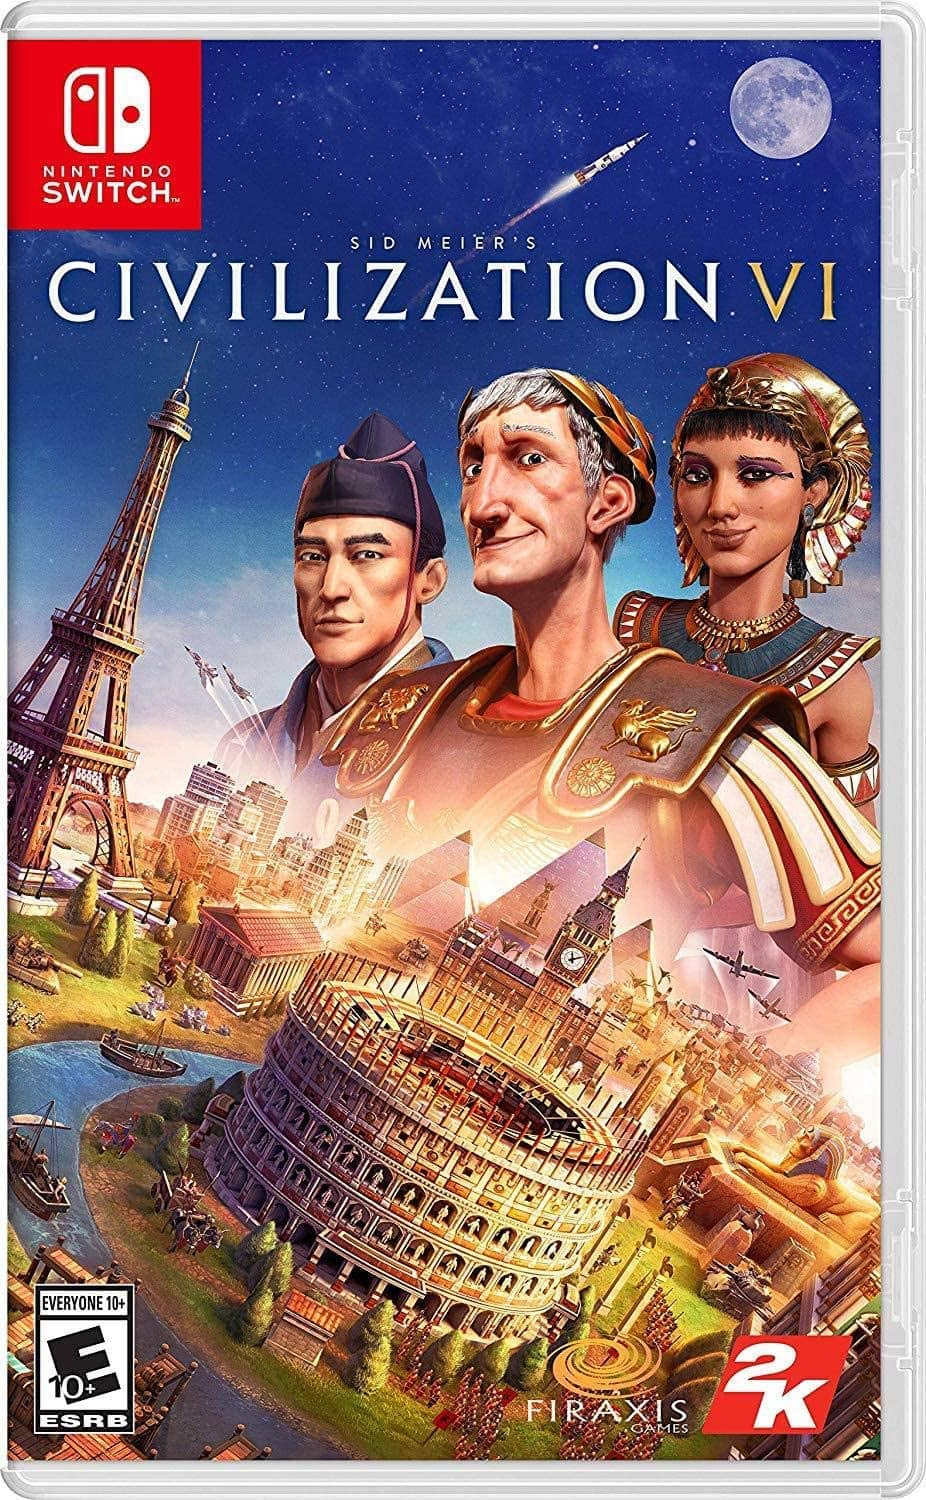 Nintendo Switch game: Civilization VI (physical copy) - $14.99 - Amazon, Best Buy and Gamestop